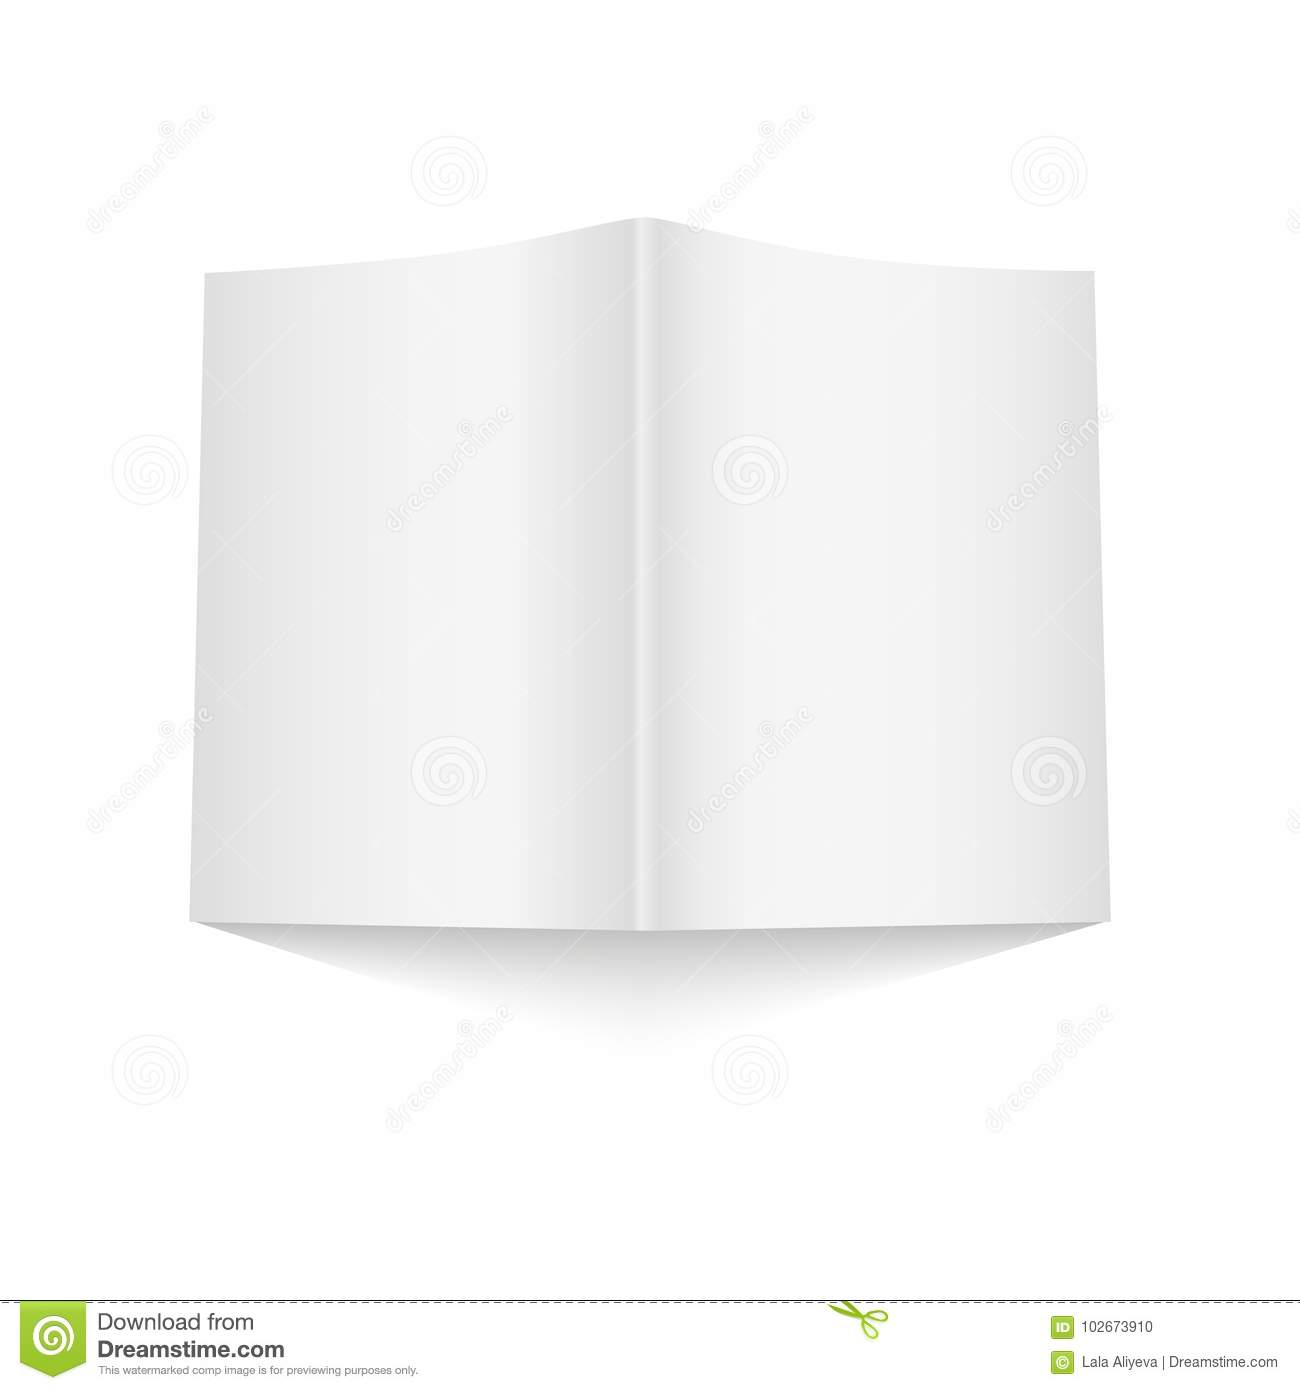 Blank Opened Magazine Cover Template On White Background With Soft